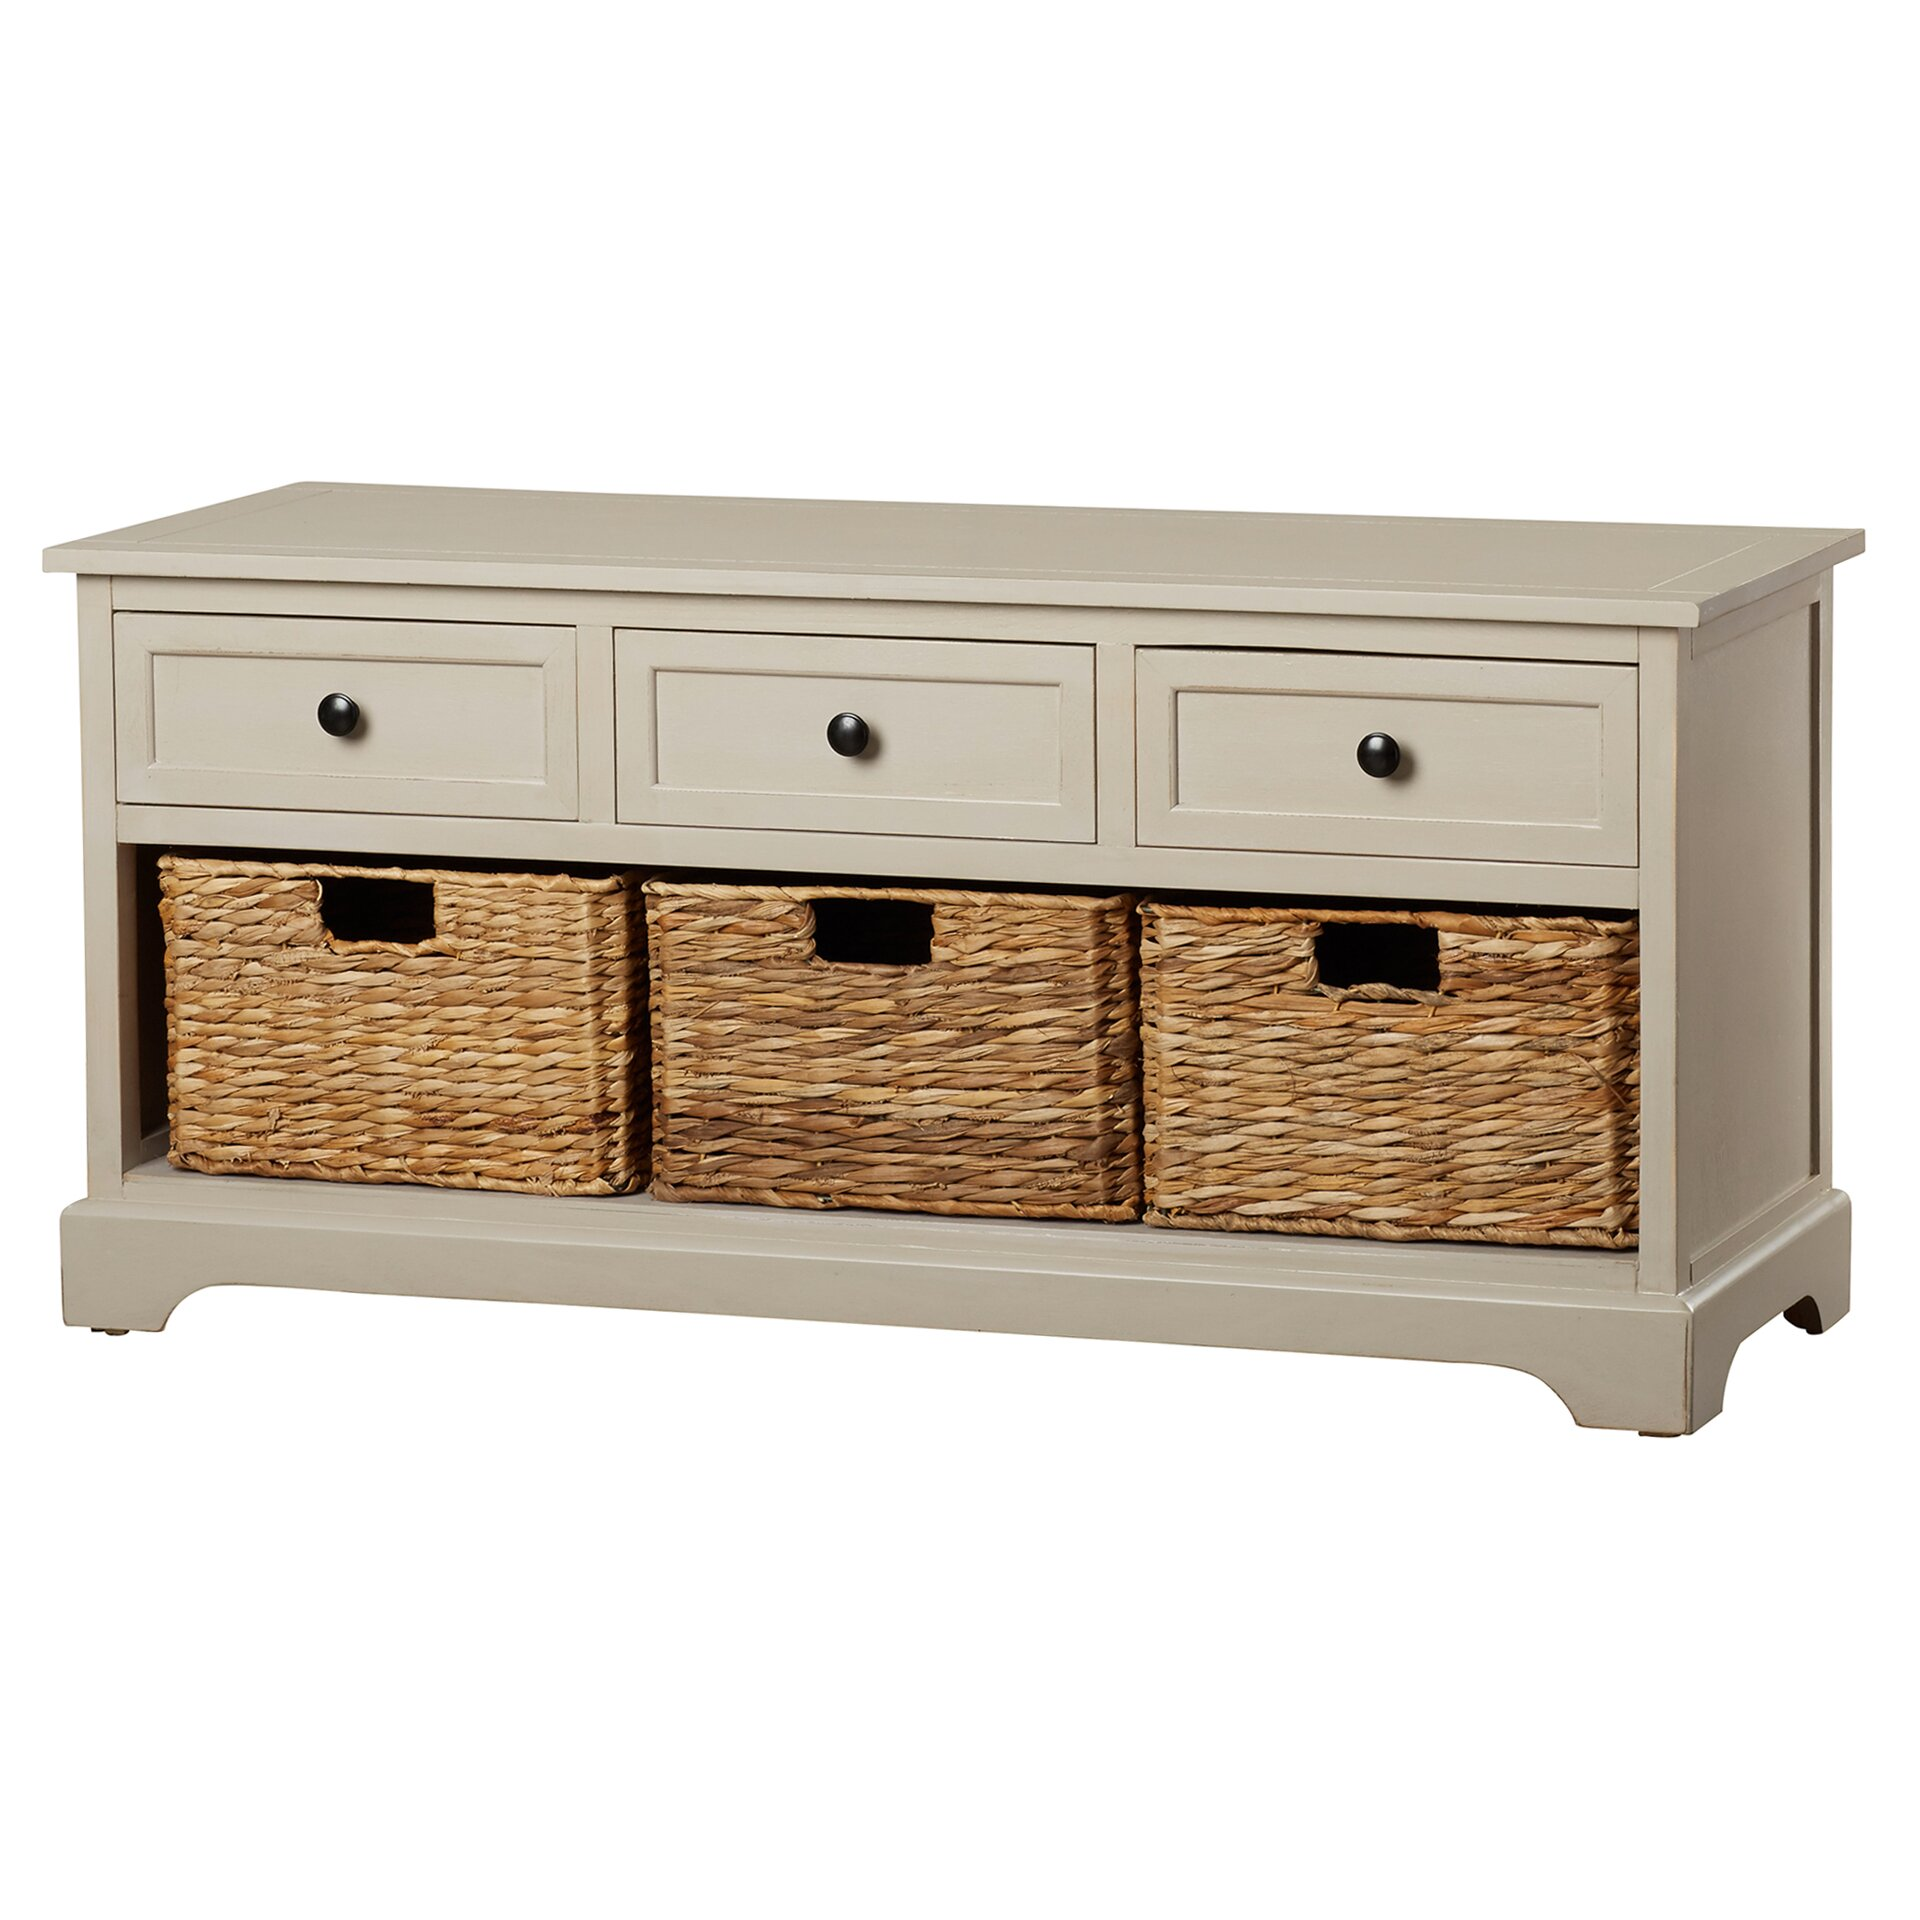 Beachcrest Home Mckinley 3 Drawer Storage Entryway Bench Reviews Wayfair